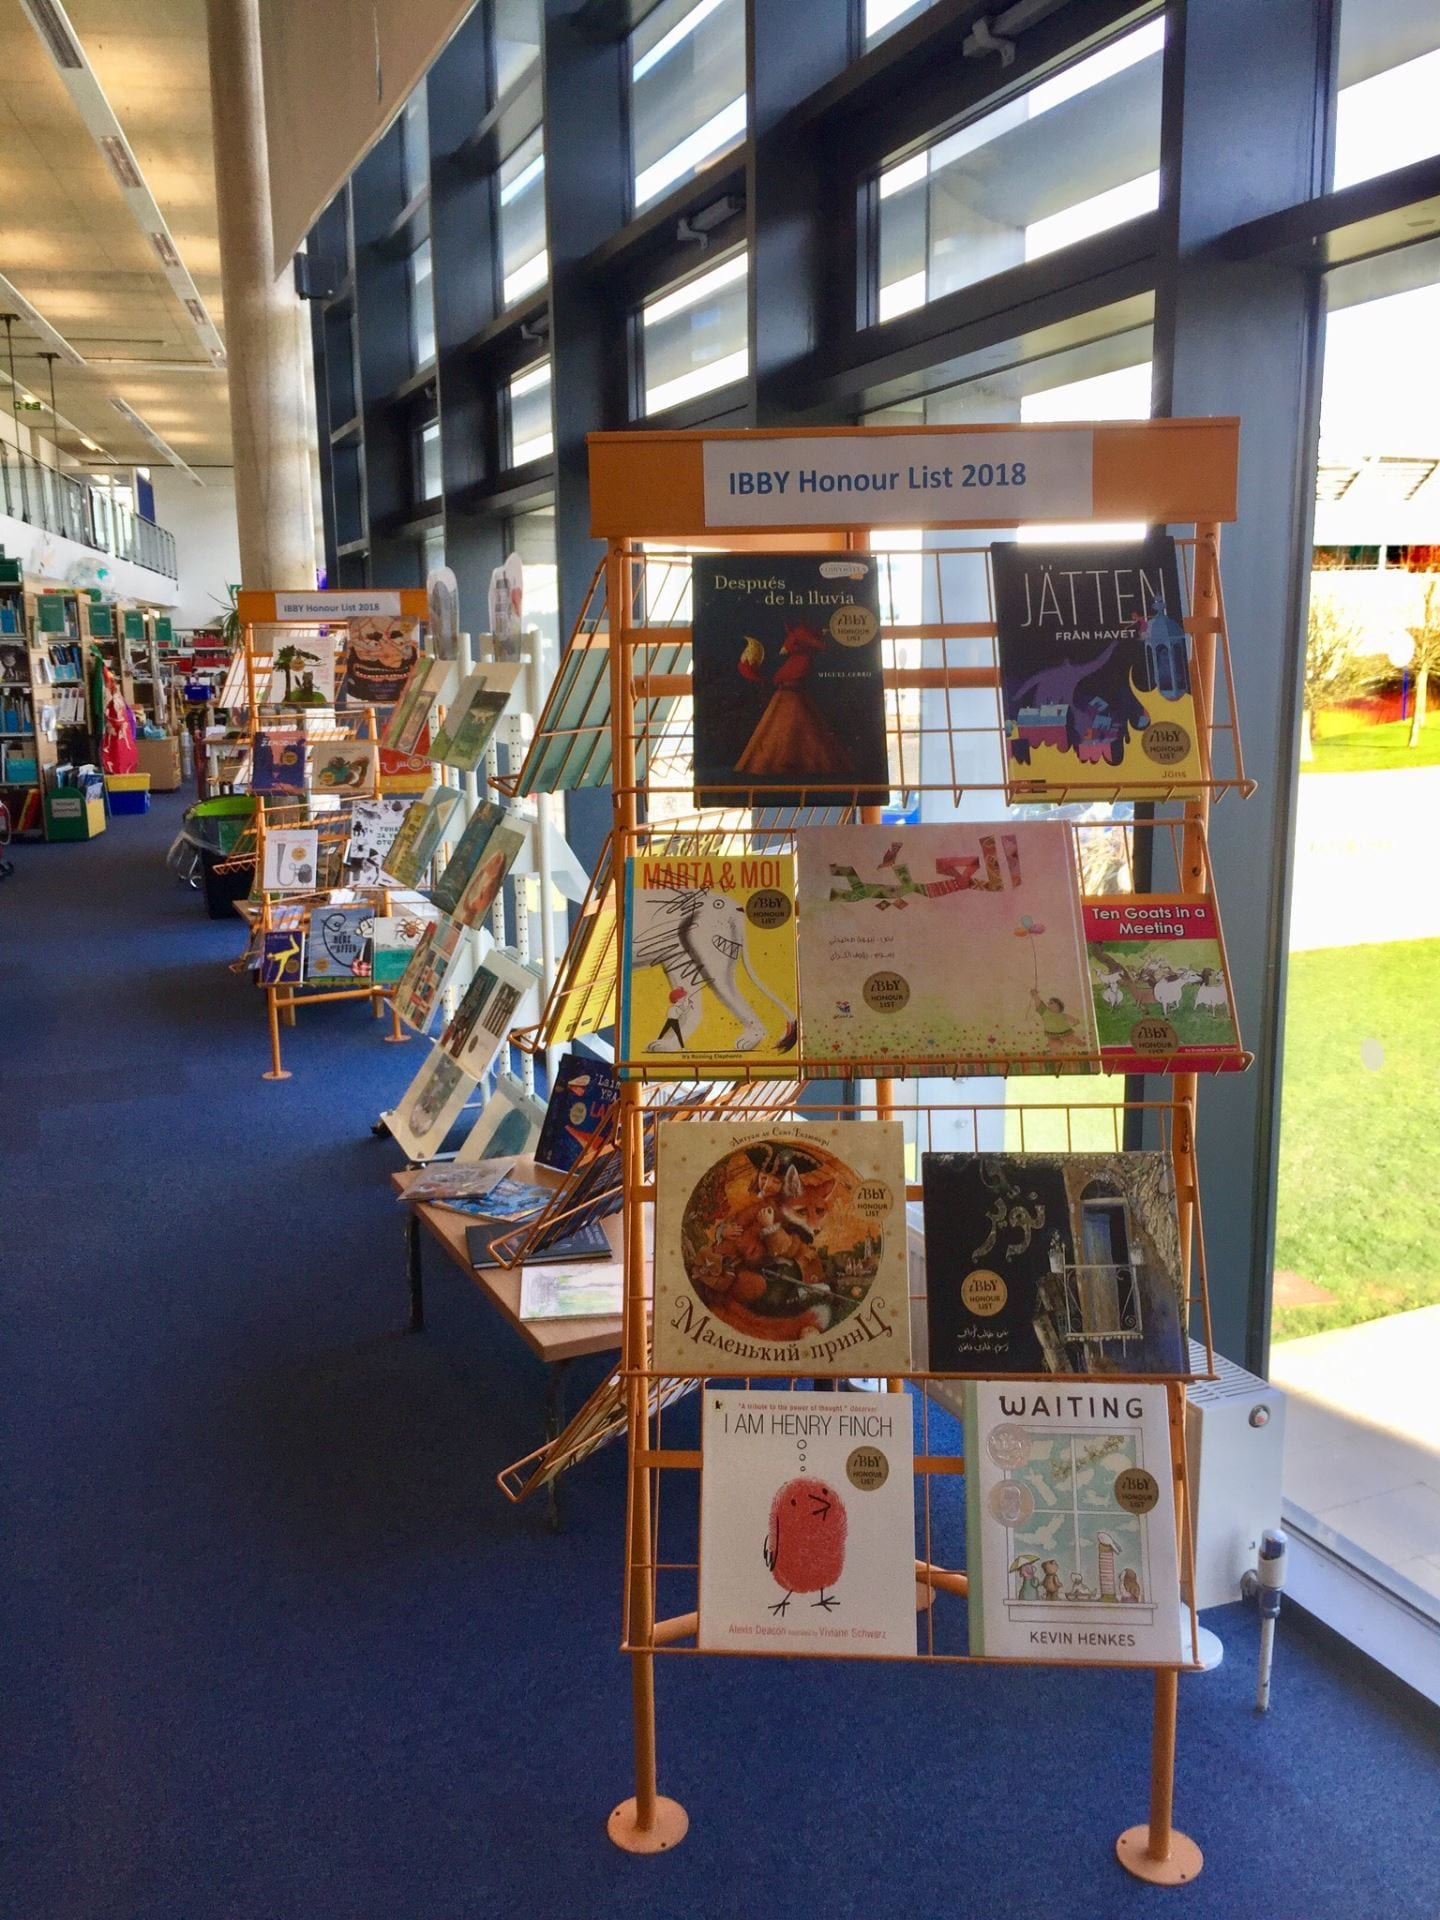 Display of IBBY in Curriculum Centre